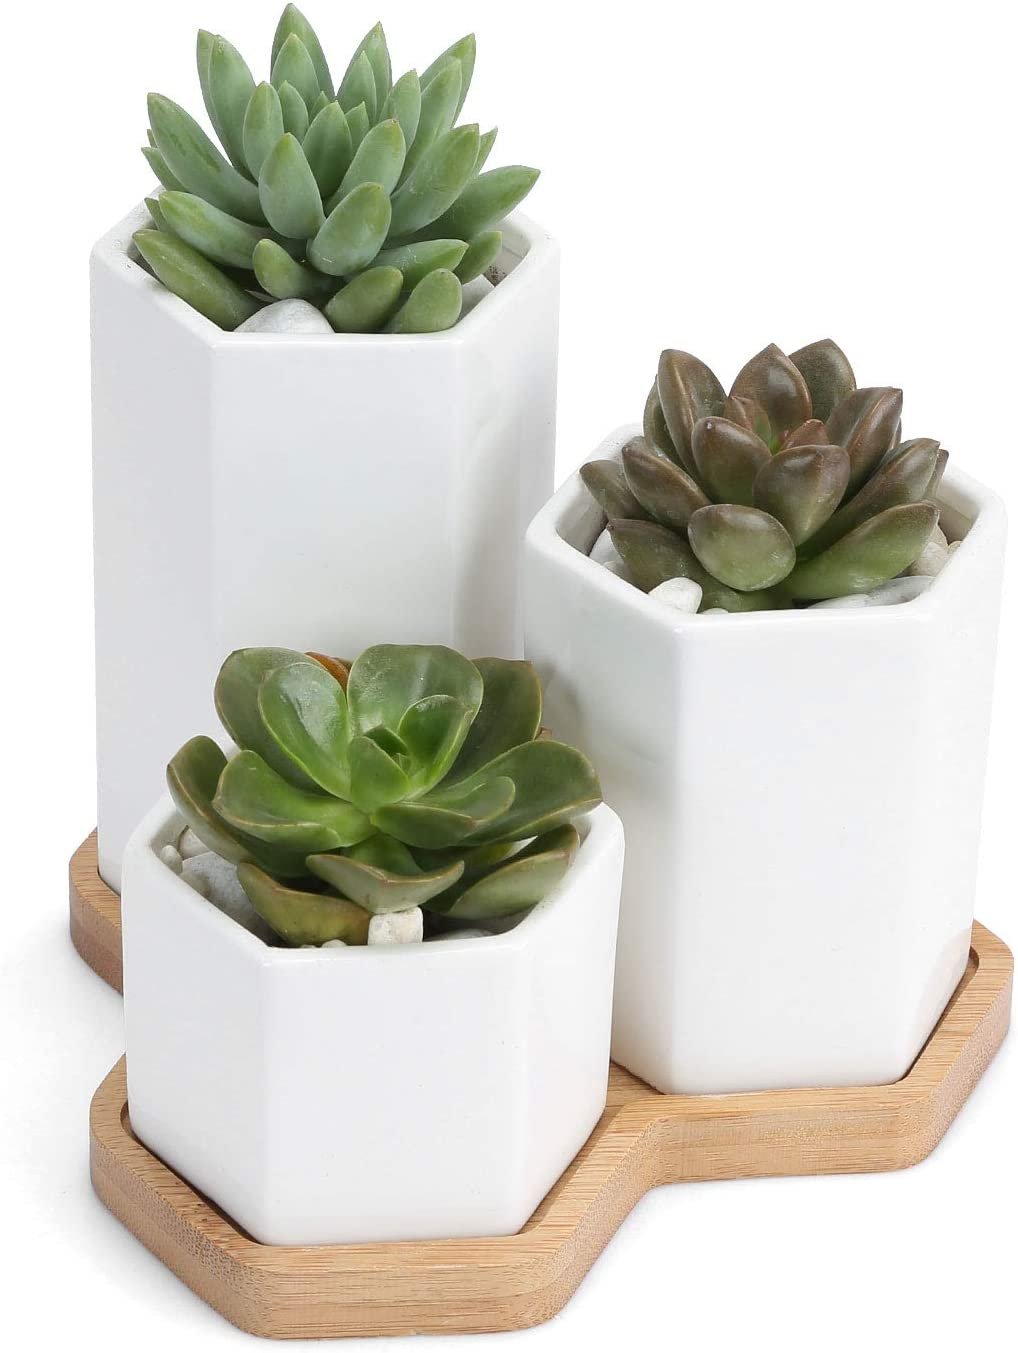 2 7inch Ceramic Succulent Planter With Square Design Succulent Pots With Bamboo Tray Small Cactus Plant Pot For Home Garden Office Decoration Set Of 3 Kitchen Dining